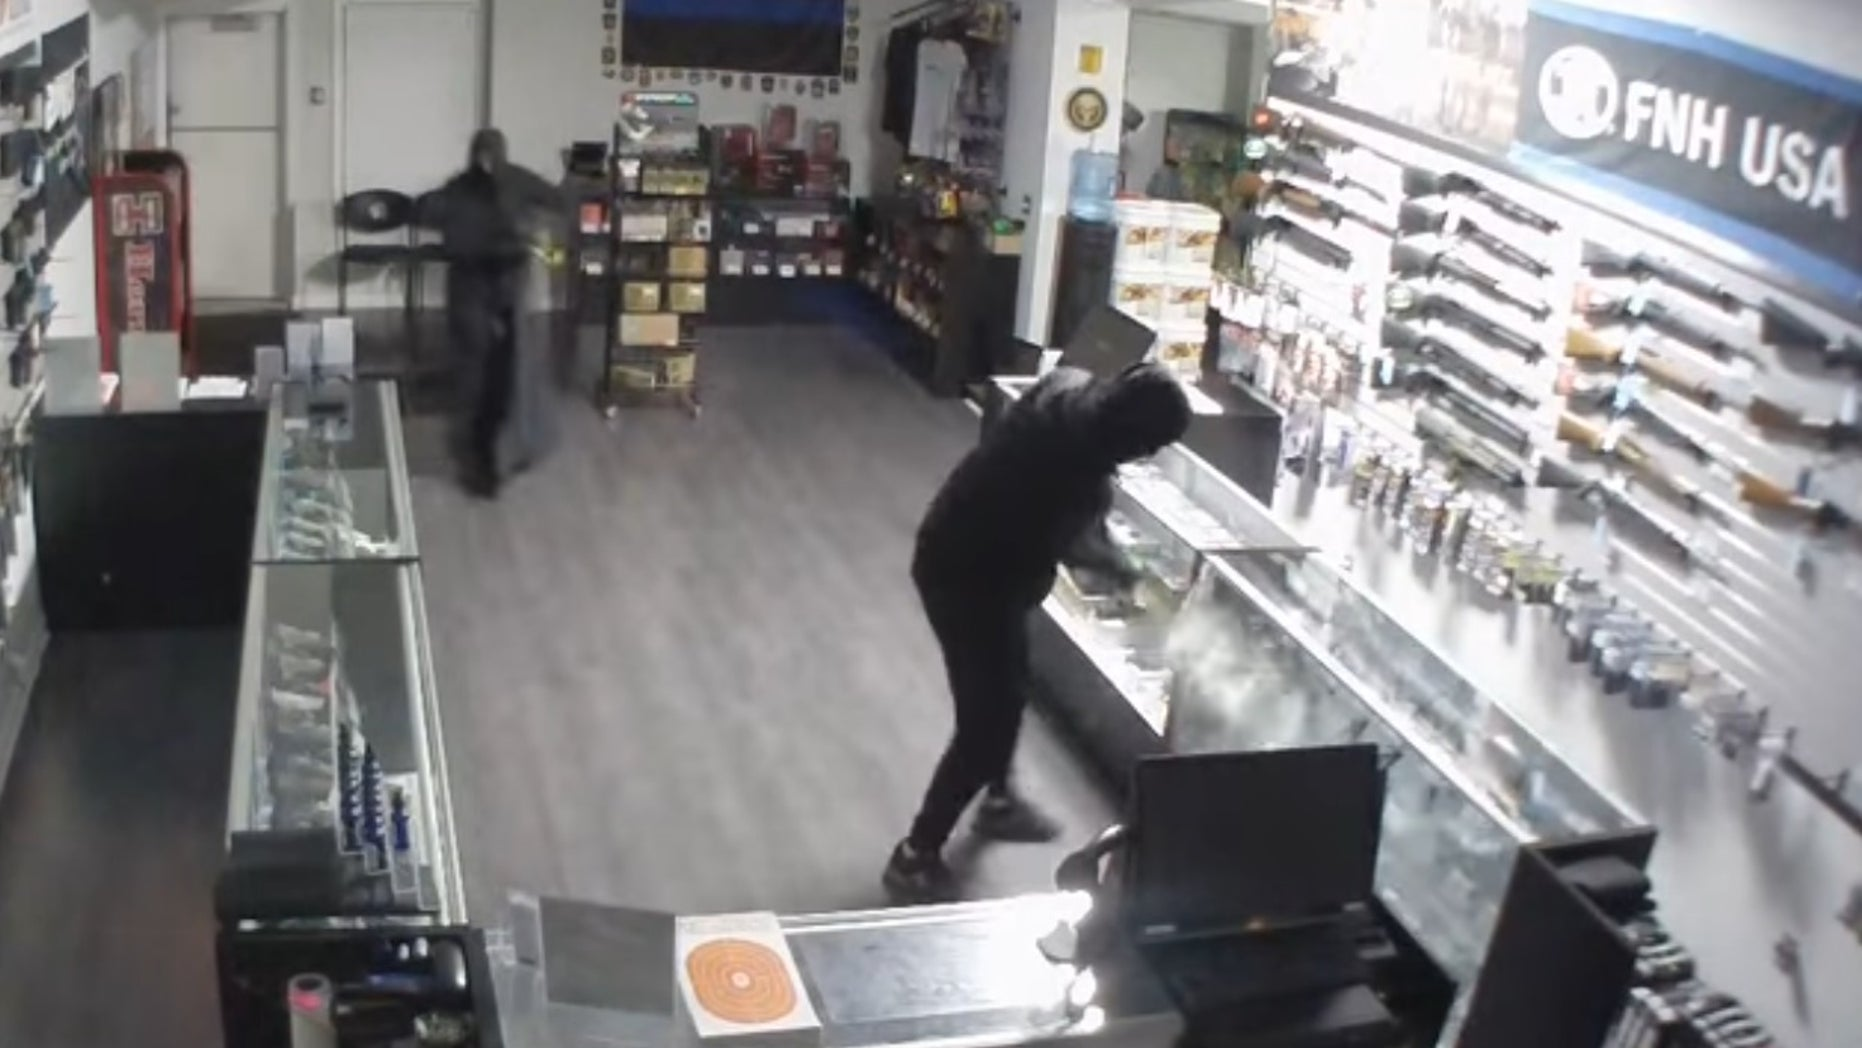 Surveillance video captured the smash-and-grab.